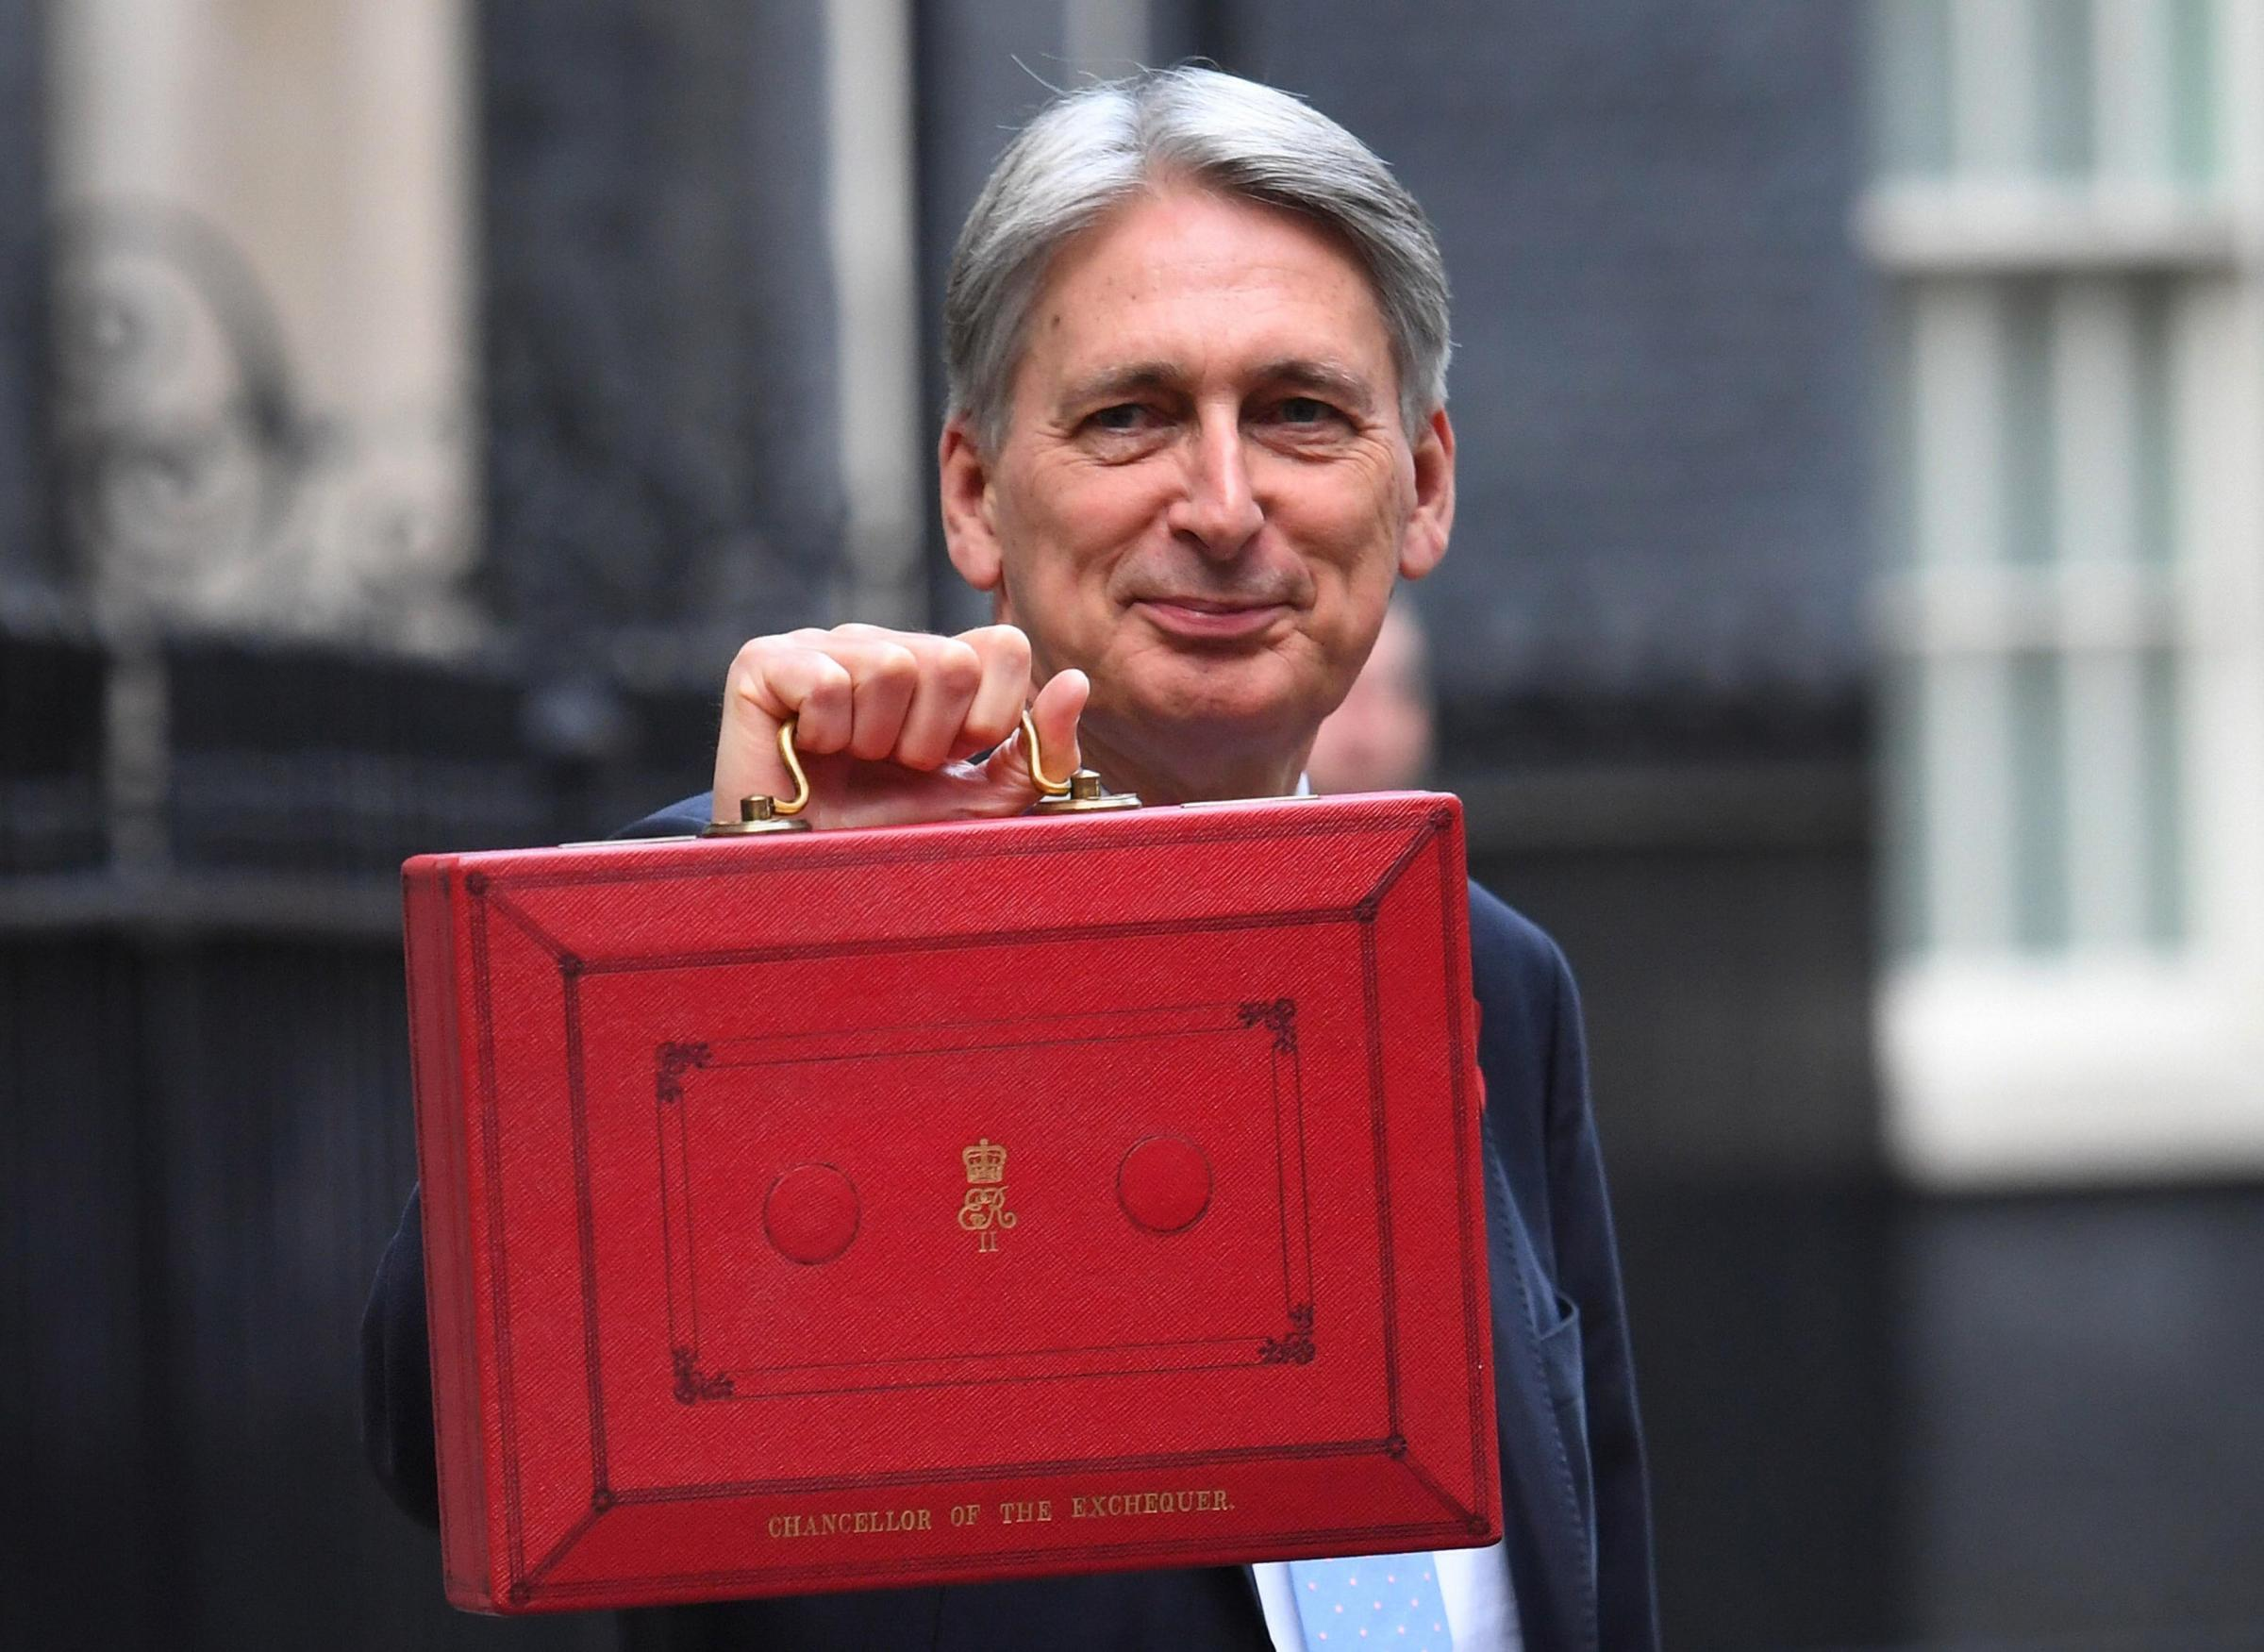 Chancellor Philip Hammond responded to criticism from an SNP MP in the Commons